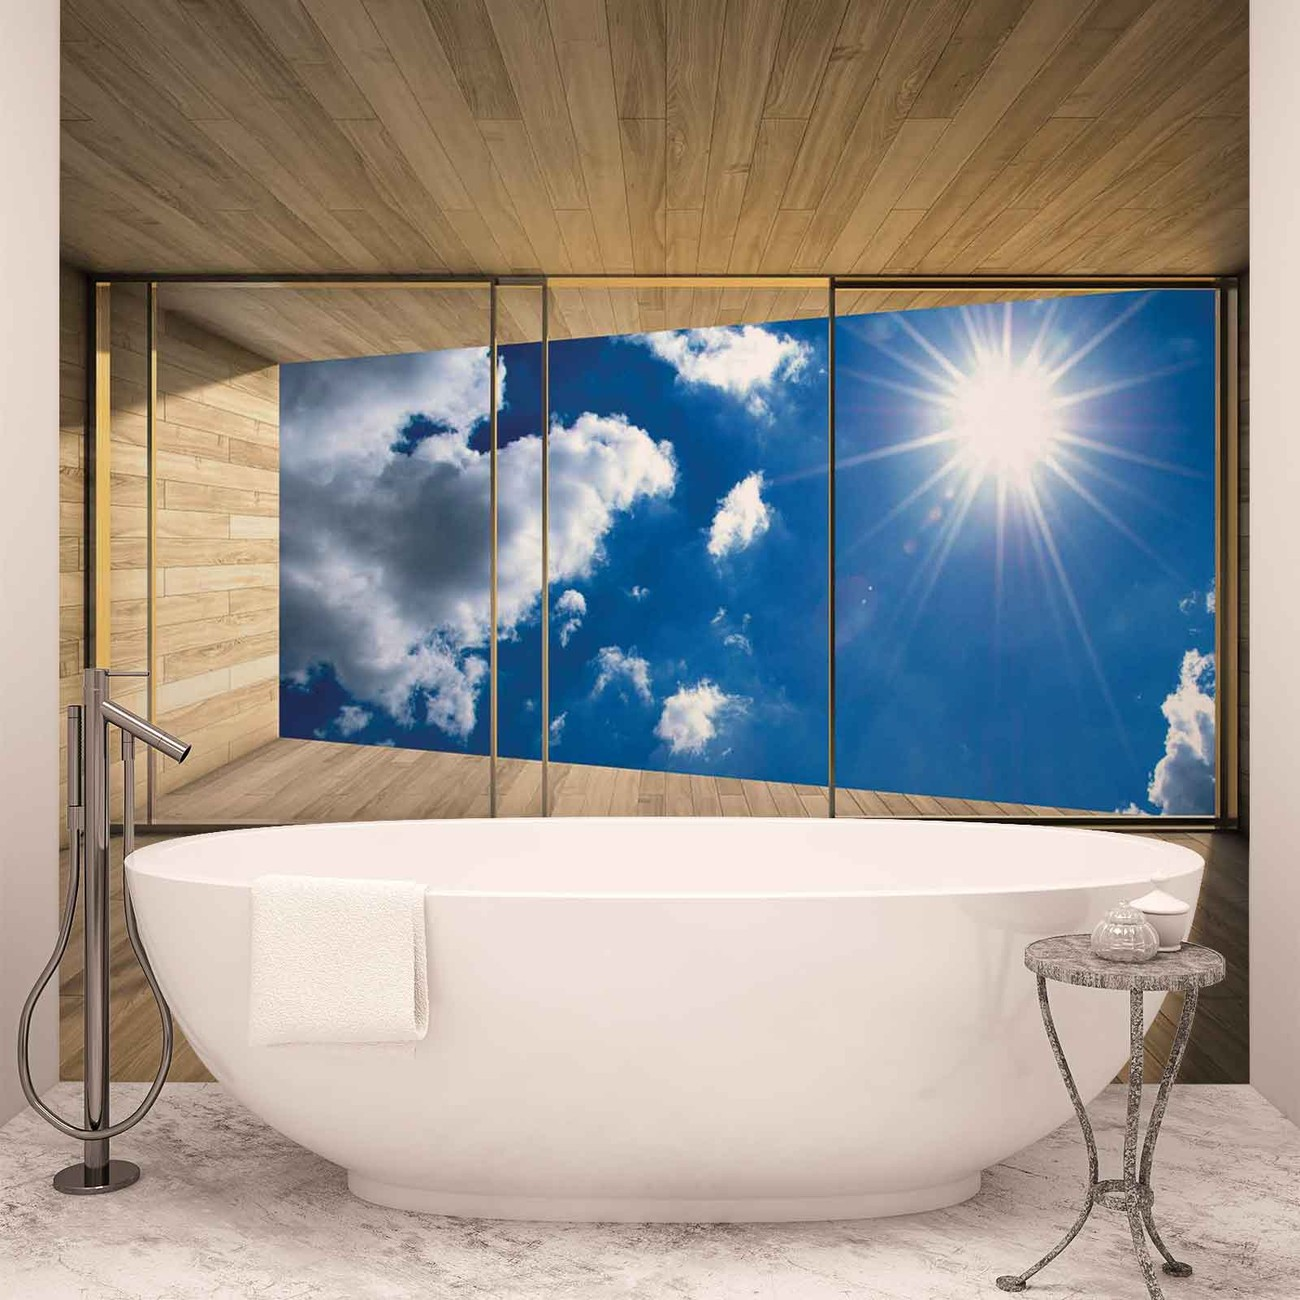 fototapete tapete fenster himmel wolken sonne natur bei europosters kostenloser versand. Black Bedroom Furniture Sets. Home Design Ideas